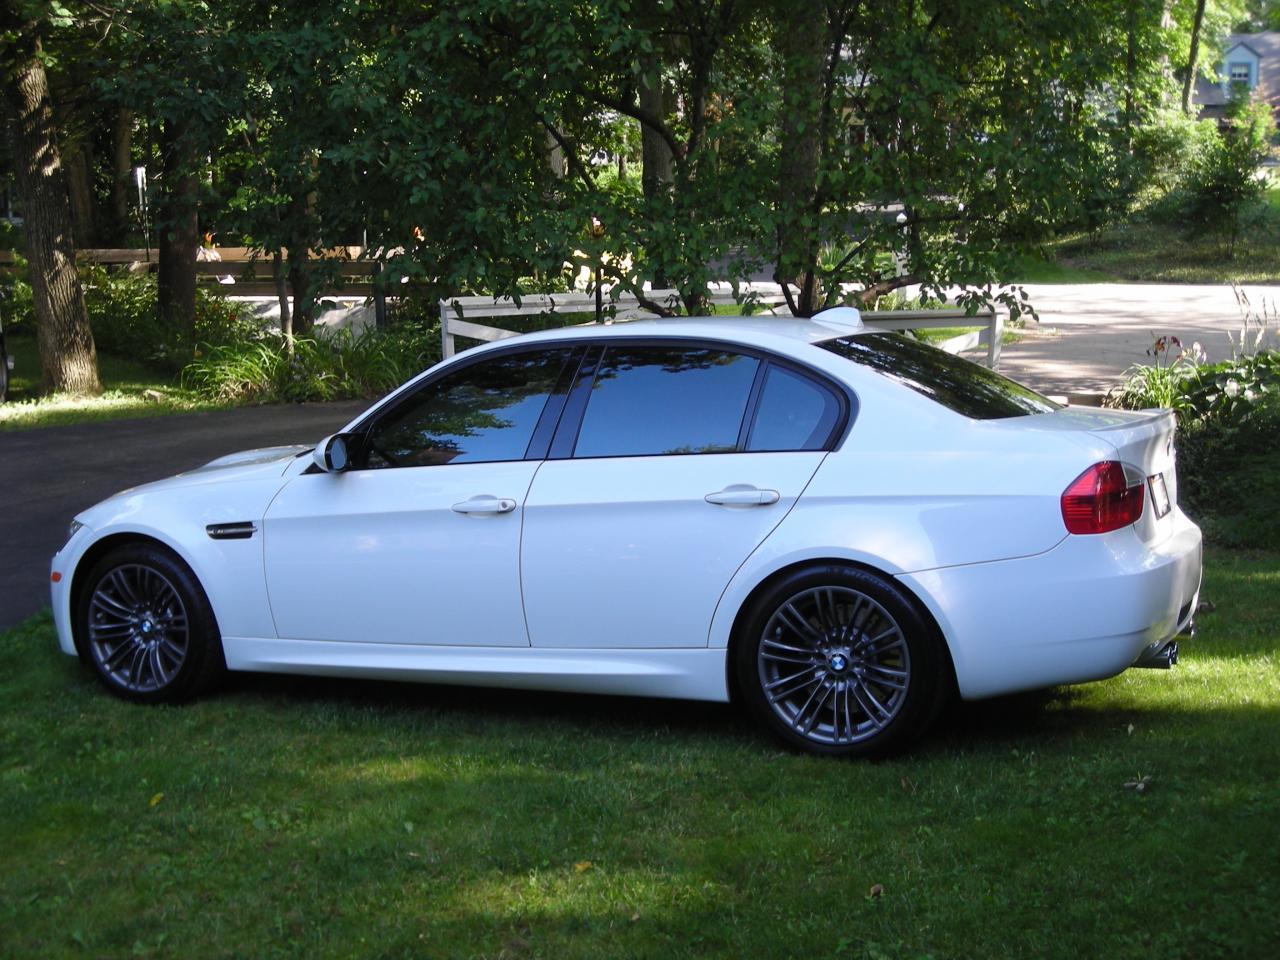 35 OR 20 Tint On 09 335i Alphine White Coupe